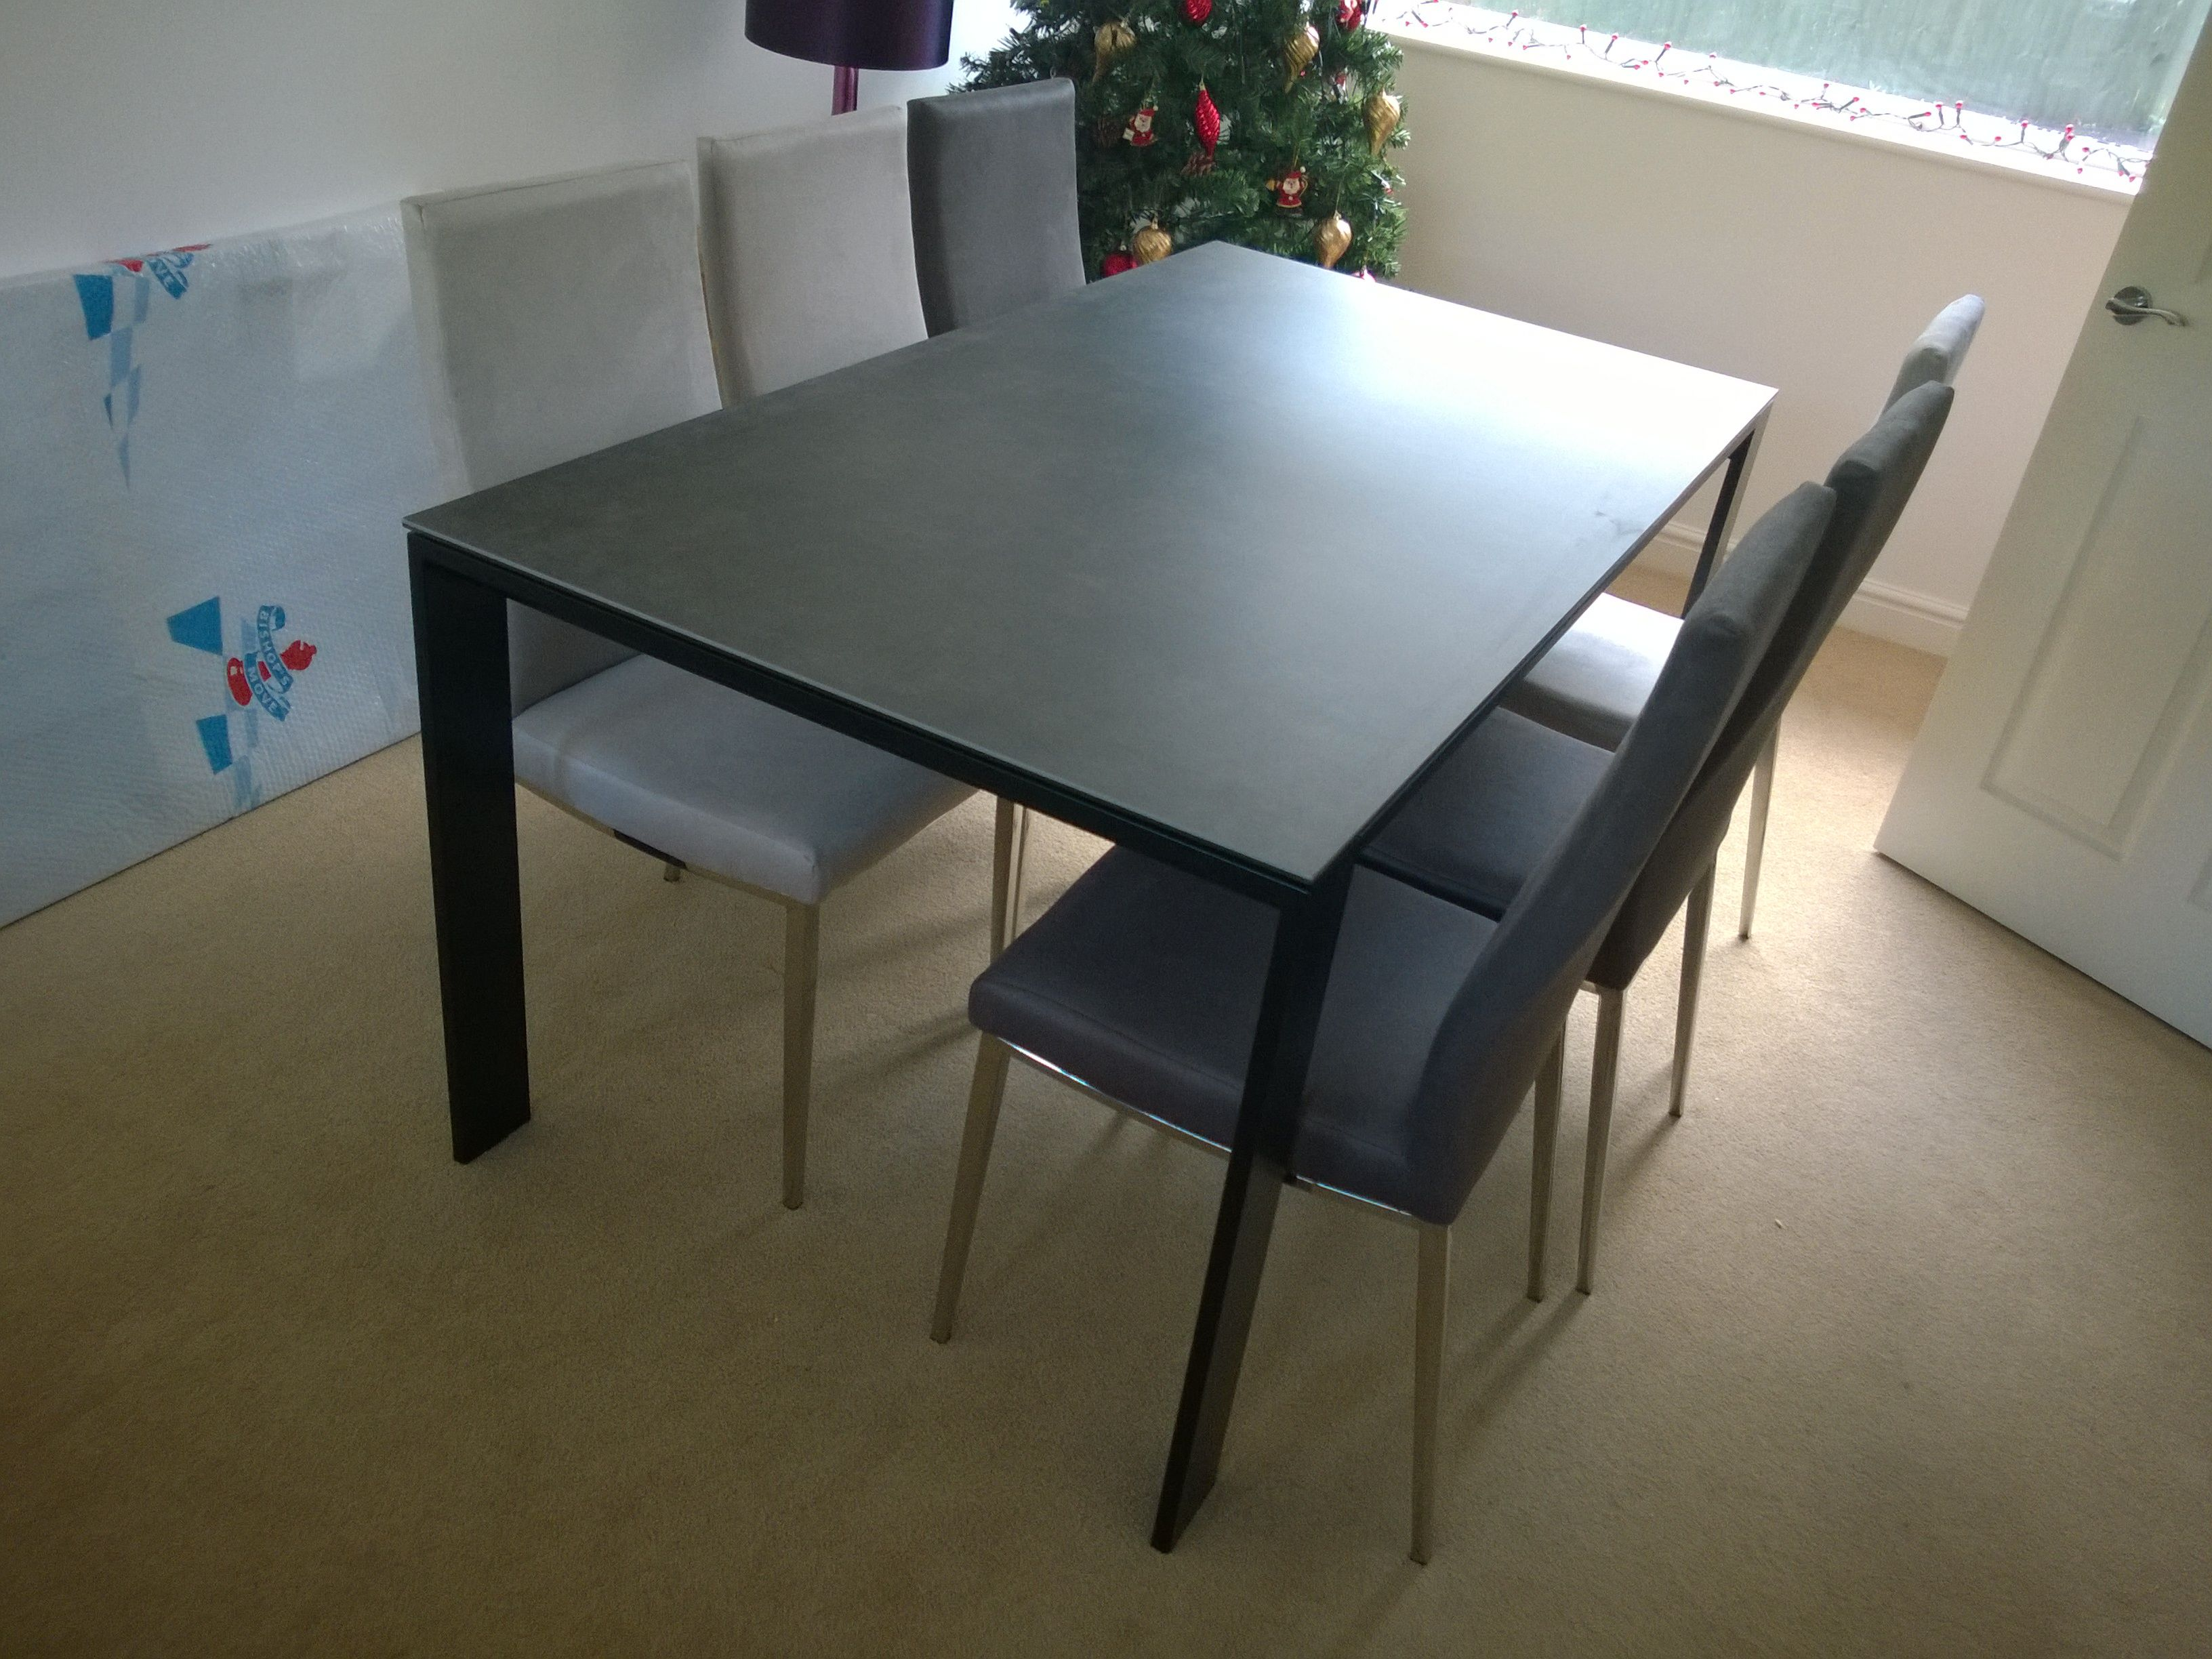 Cosmopolitan Extendable Dining Table In Ceramic Top With Matte Black Frame.  Table Size Is 165cm